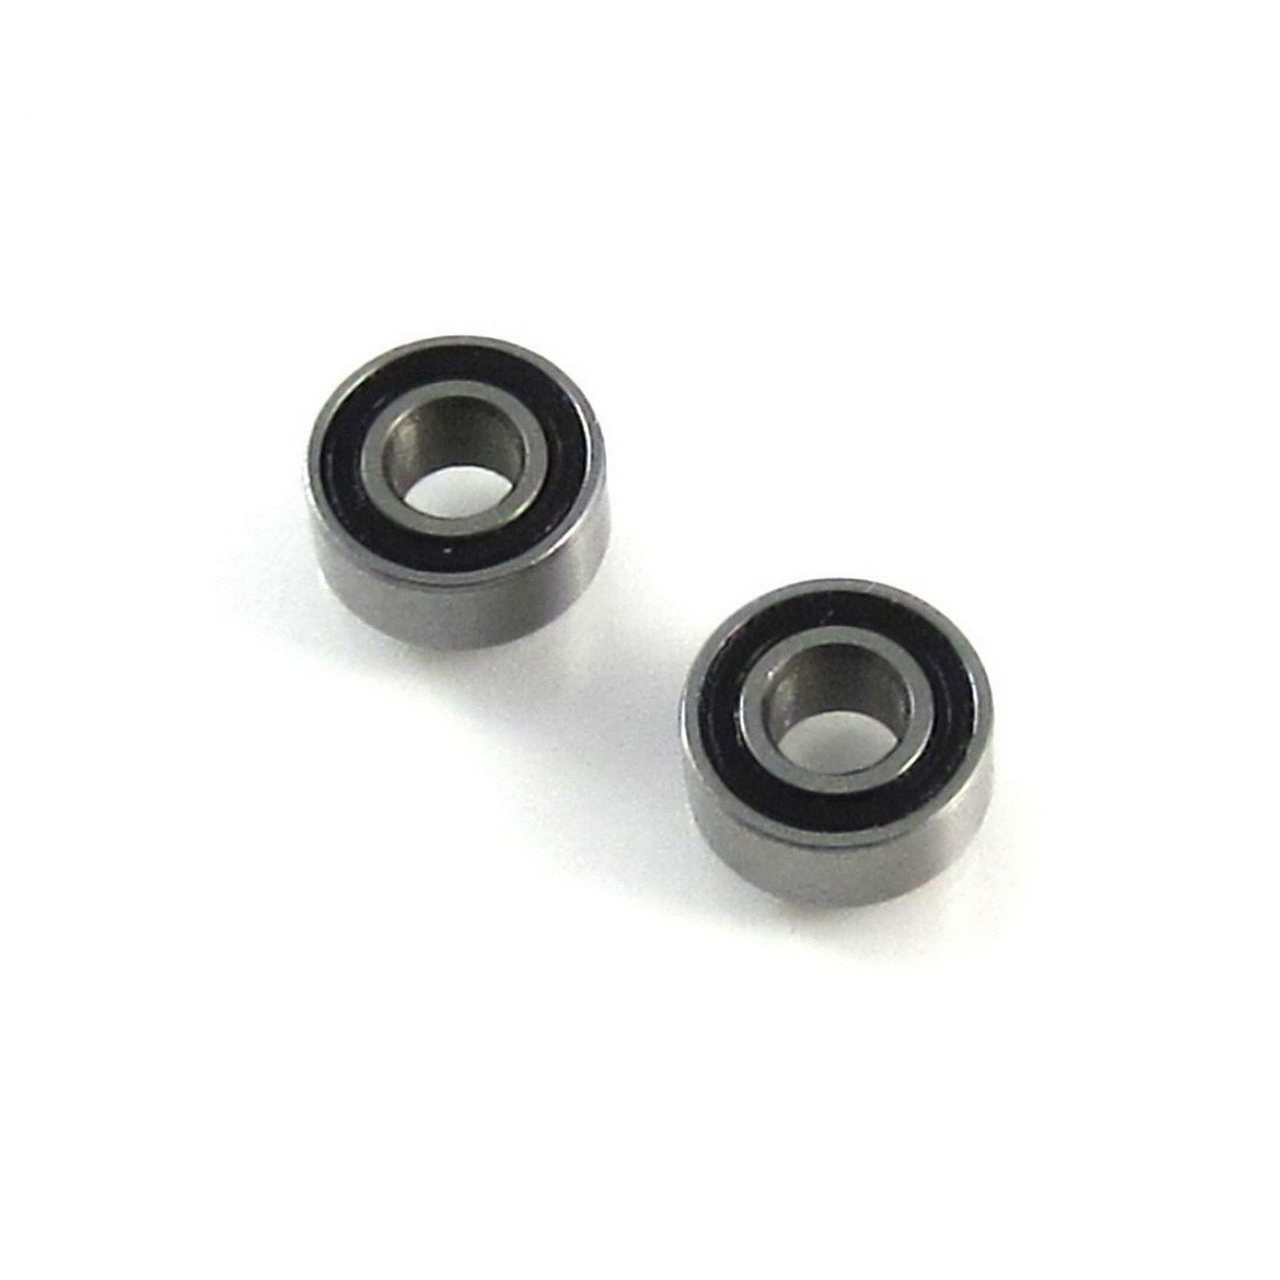 TRB RC 3x7x3mm Precision Ball Bearings ABEC 3 Rubber Sealed (2)